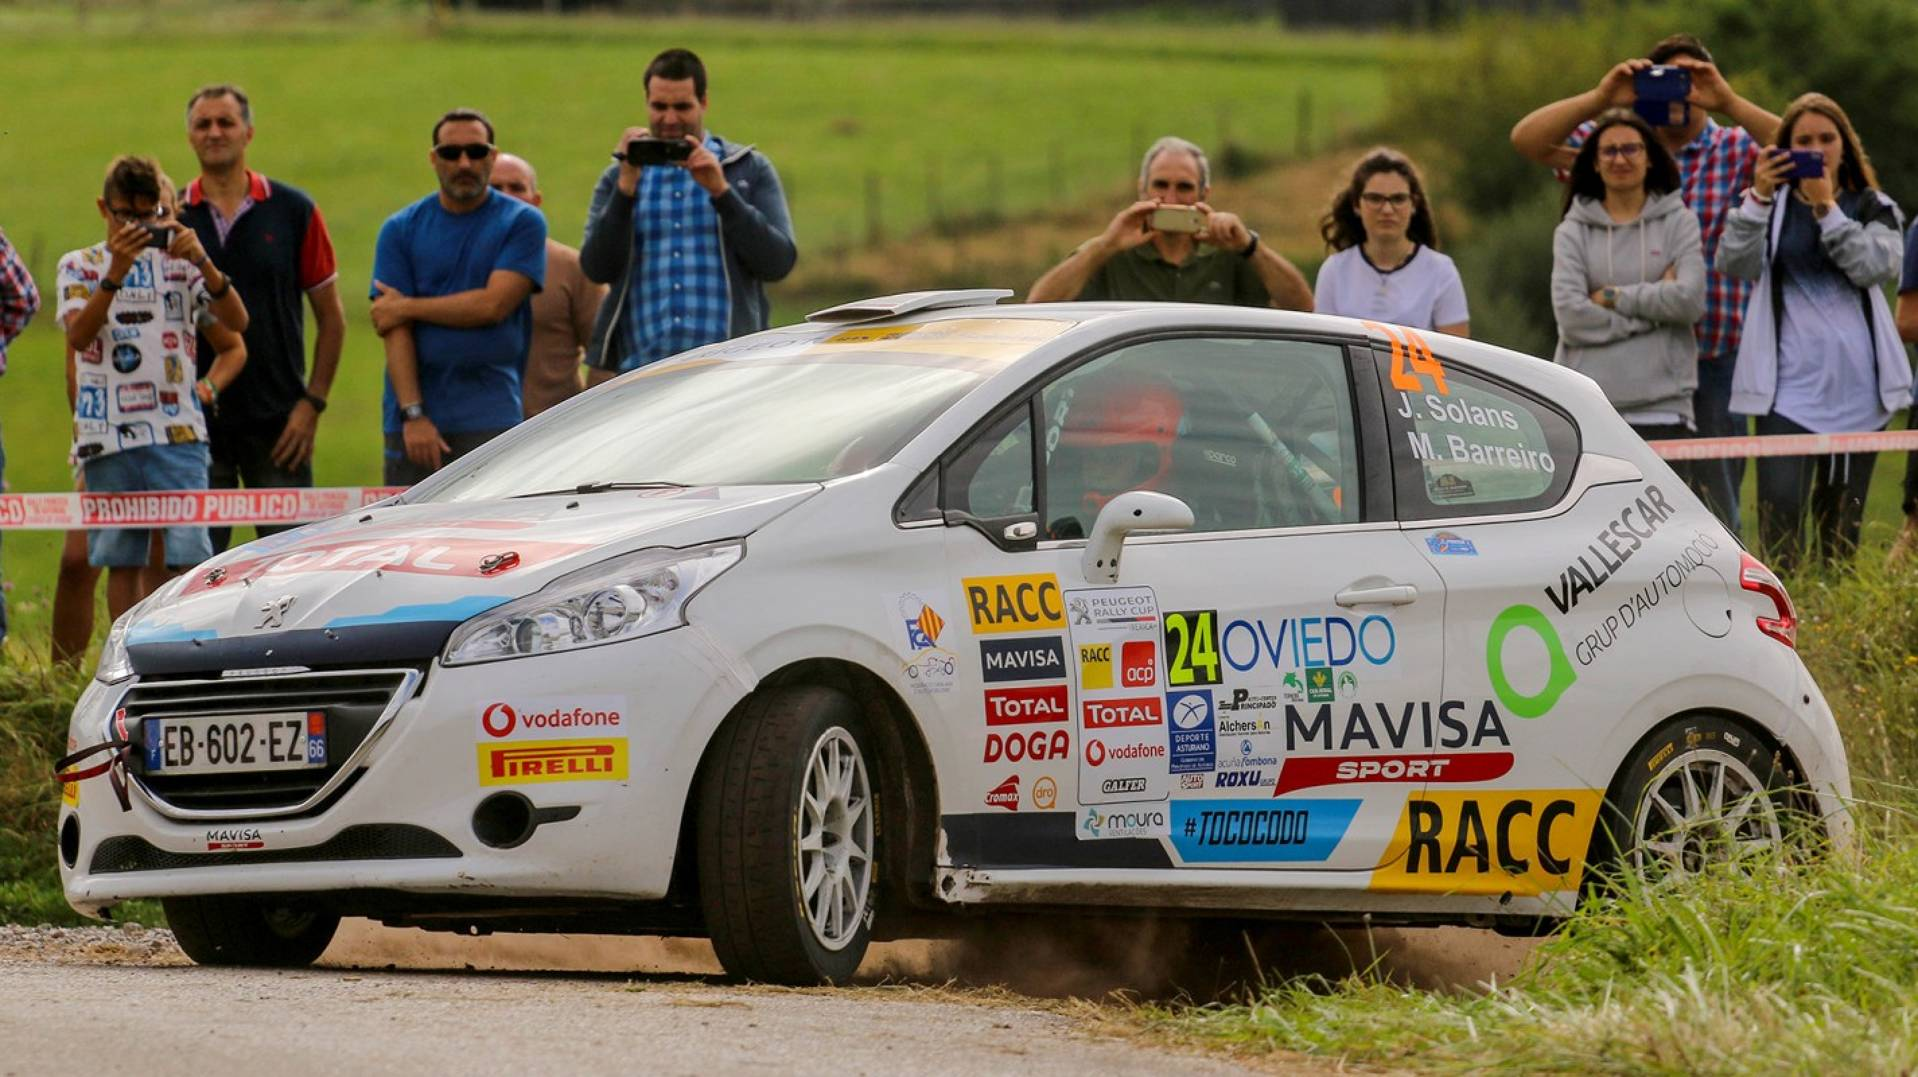 Jan Solans, campió de la Beca Junior R2